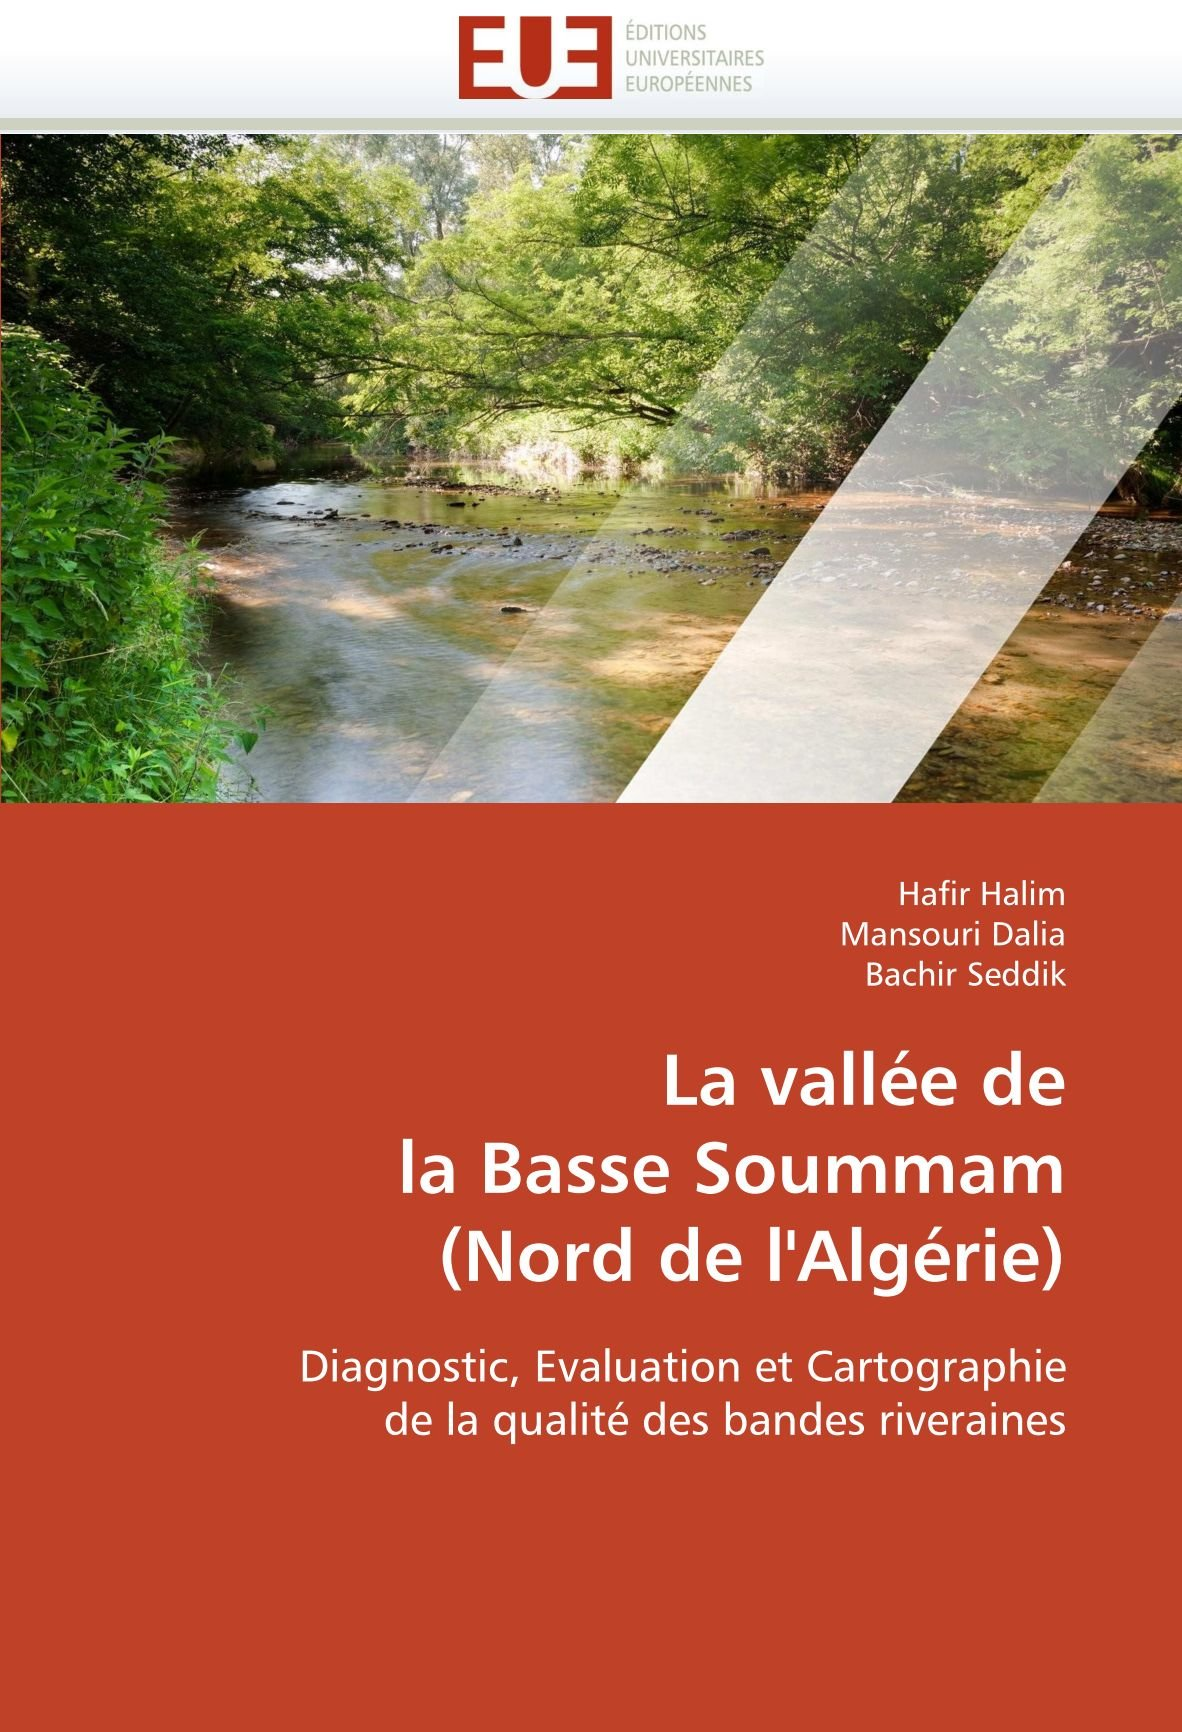 La vallée de la Basse Soummam (Nord de l'Algérie): Diagnostic, Evaluation et Cartographie de la qualité des bandes riveraines (Omn.Univ.Europ.) (French Edition) ebook